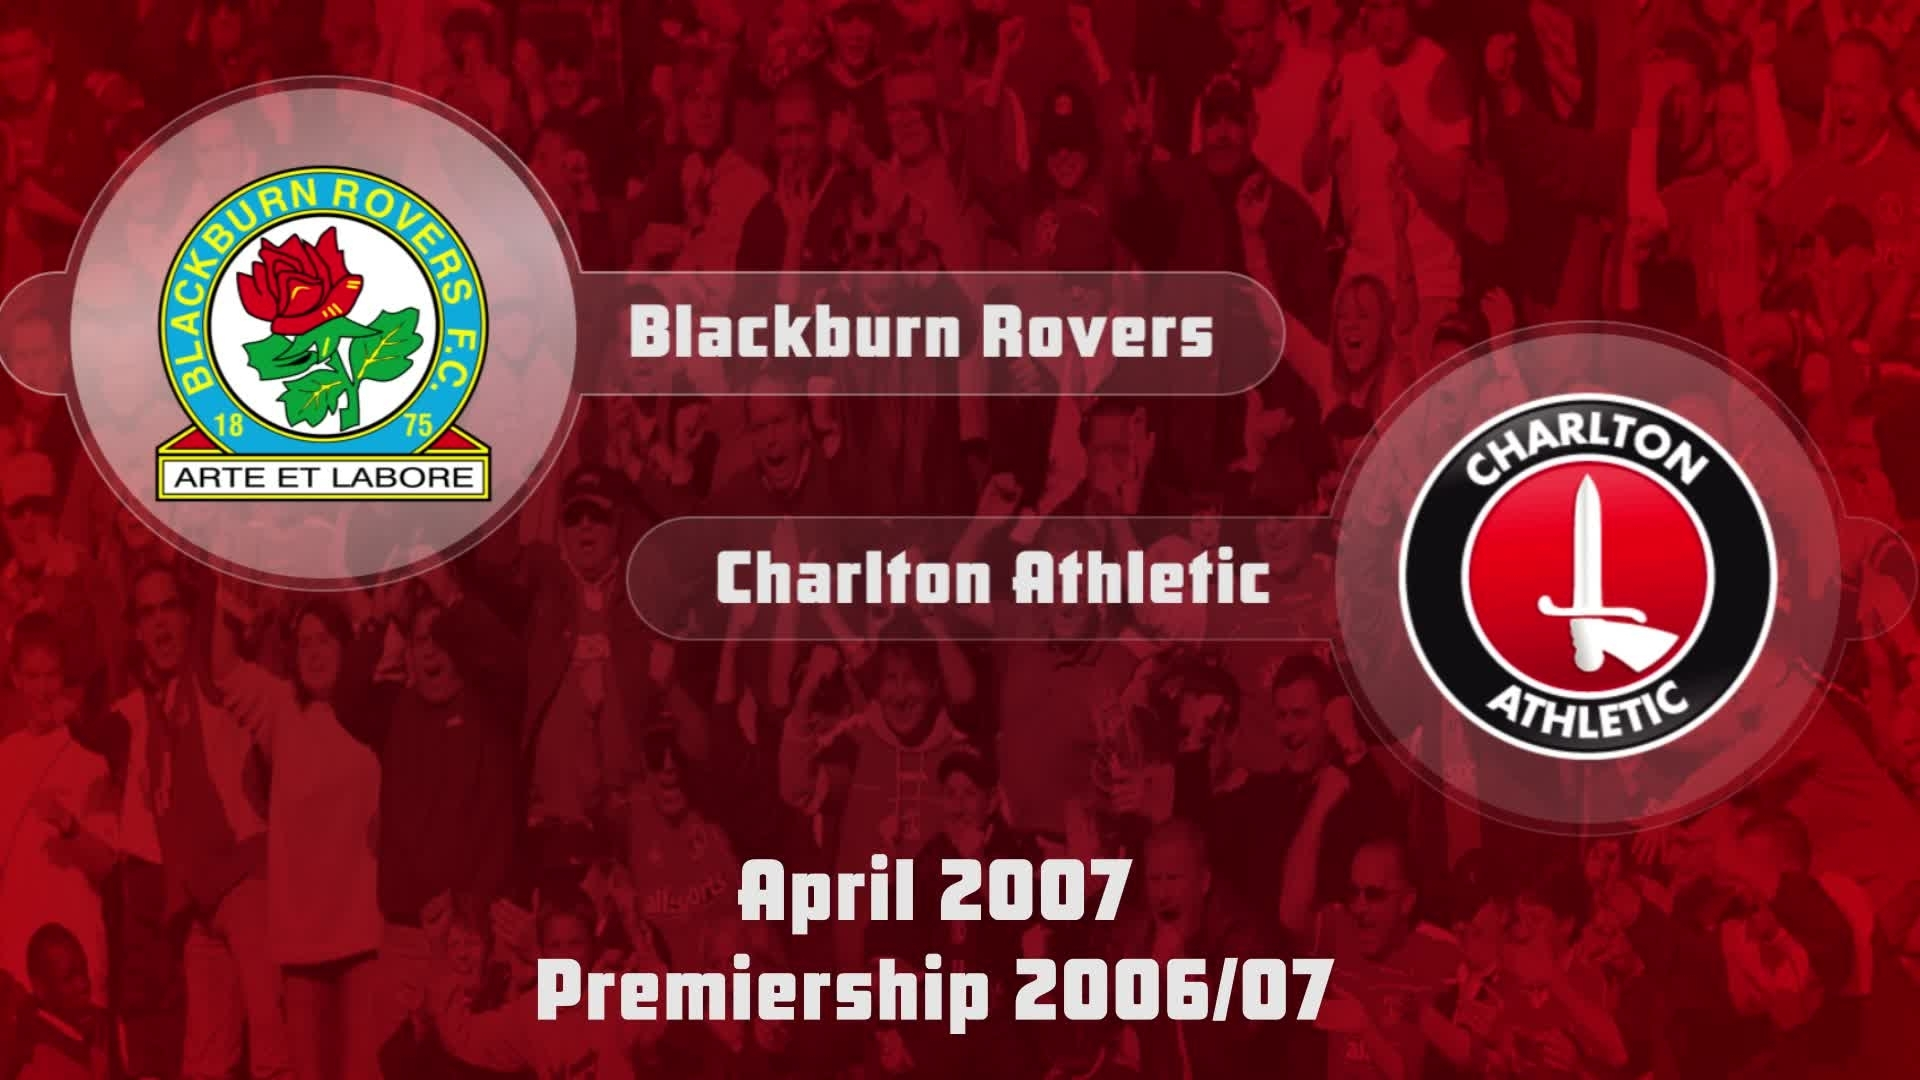 41 HIGHLIGHTS | Blackburn Rovers 4 Charlton 1 (April 2007)